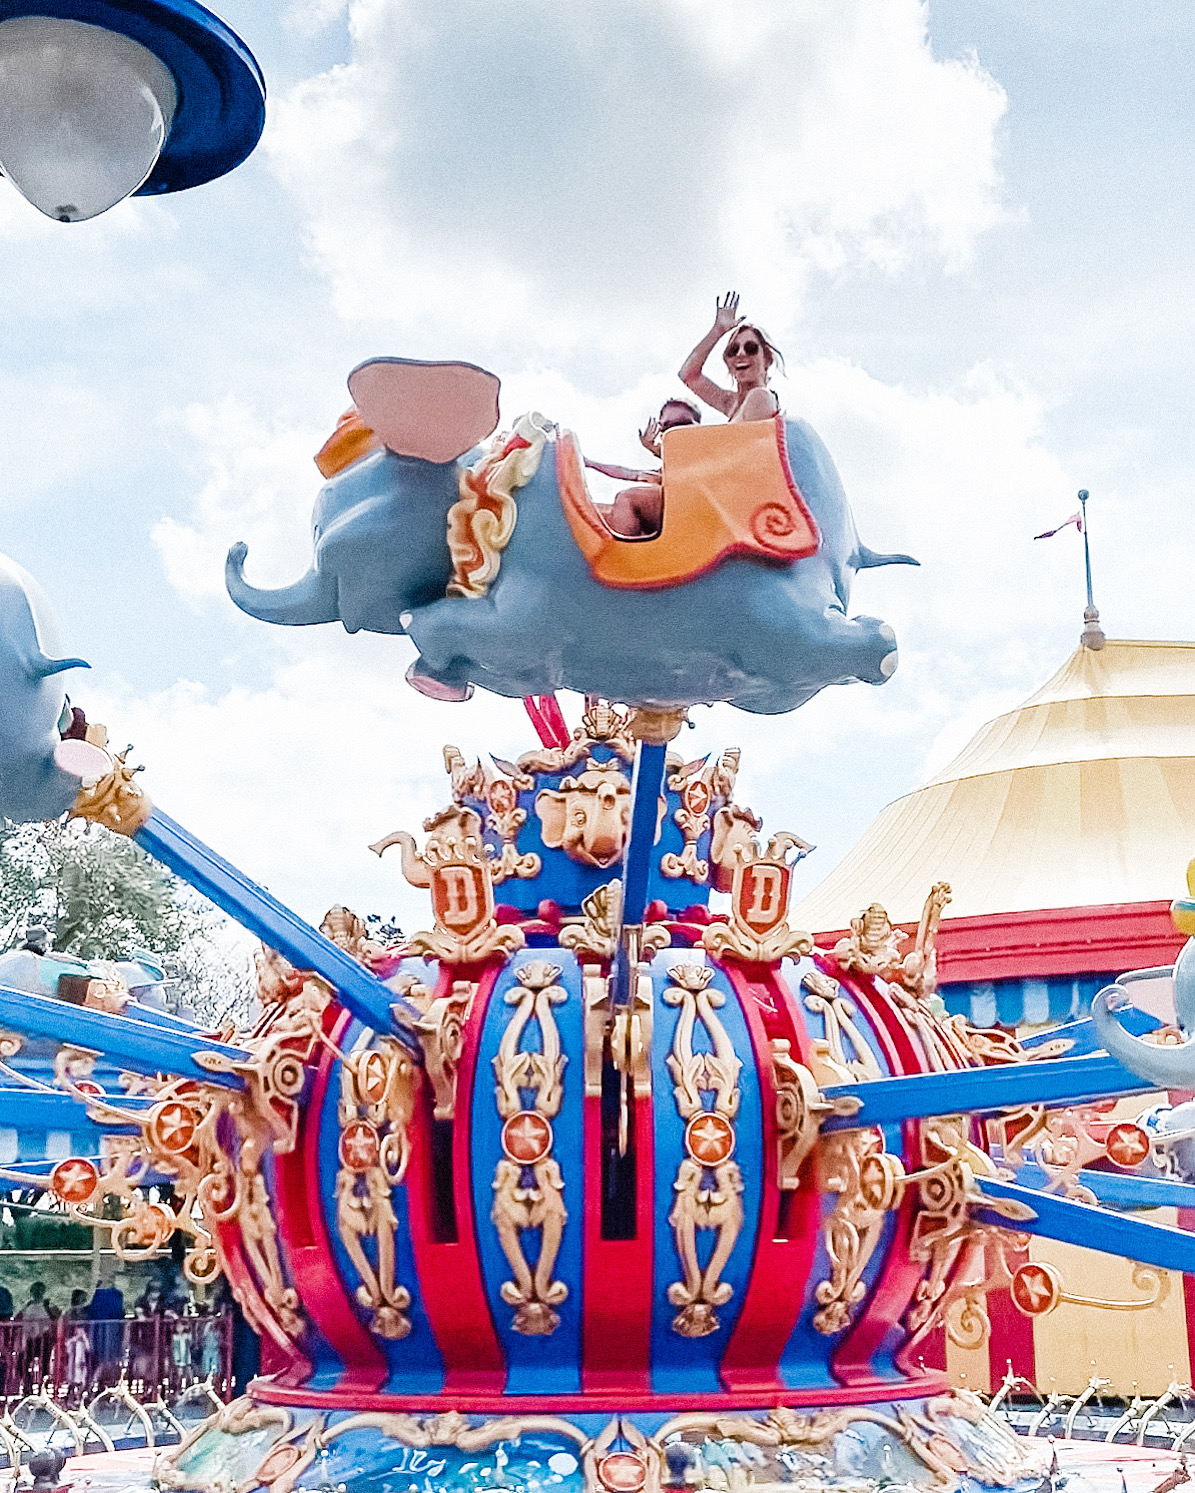 Connecticut life and style blogger Lauren McBride shares about her trip to Walt Disney World with Kids, including where to stay, eat, and things to do.